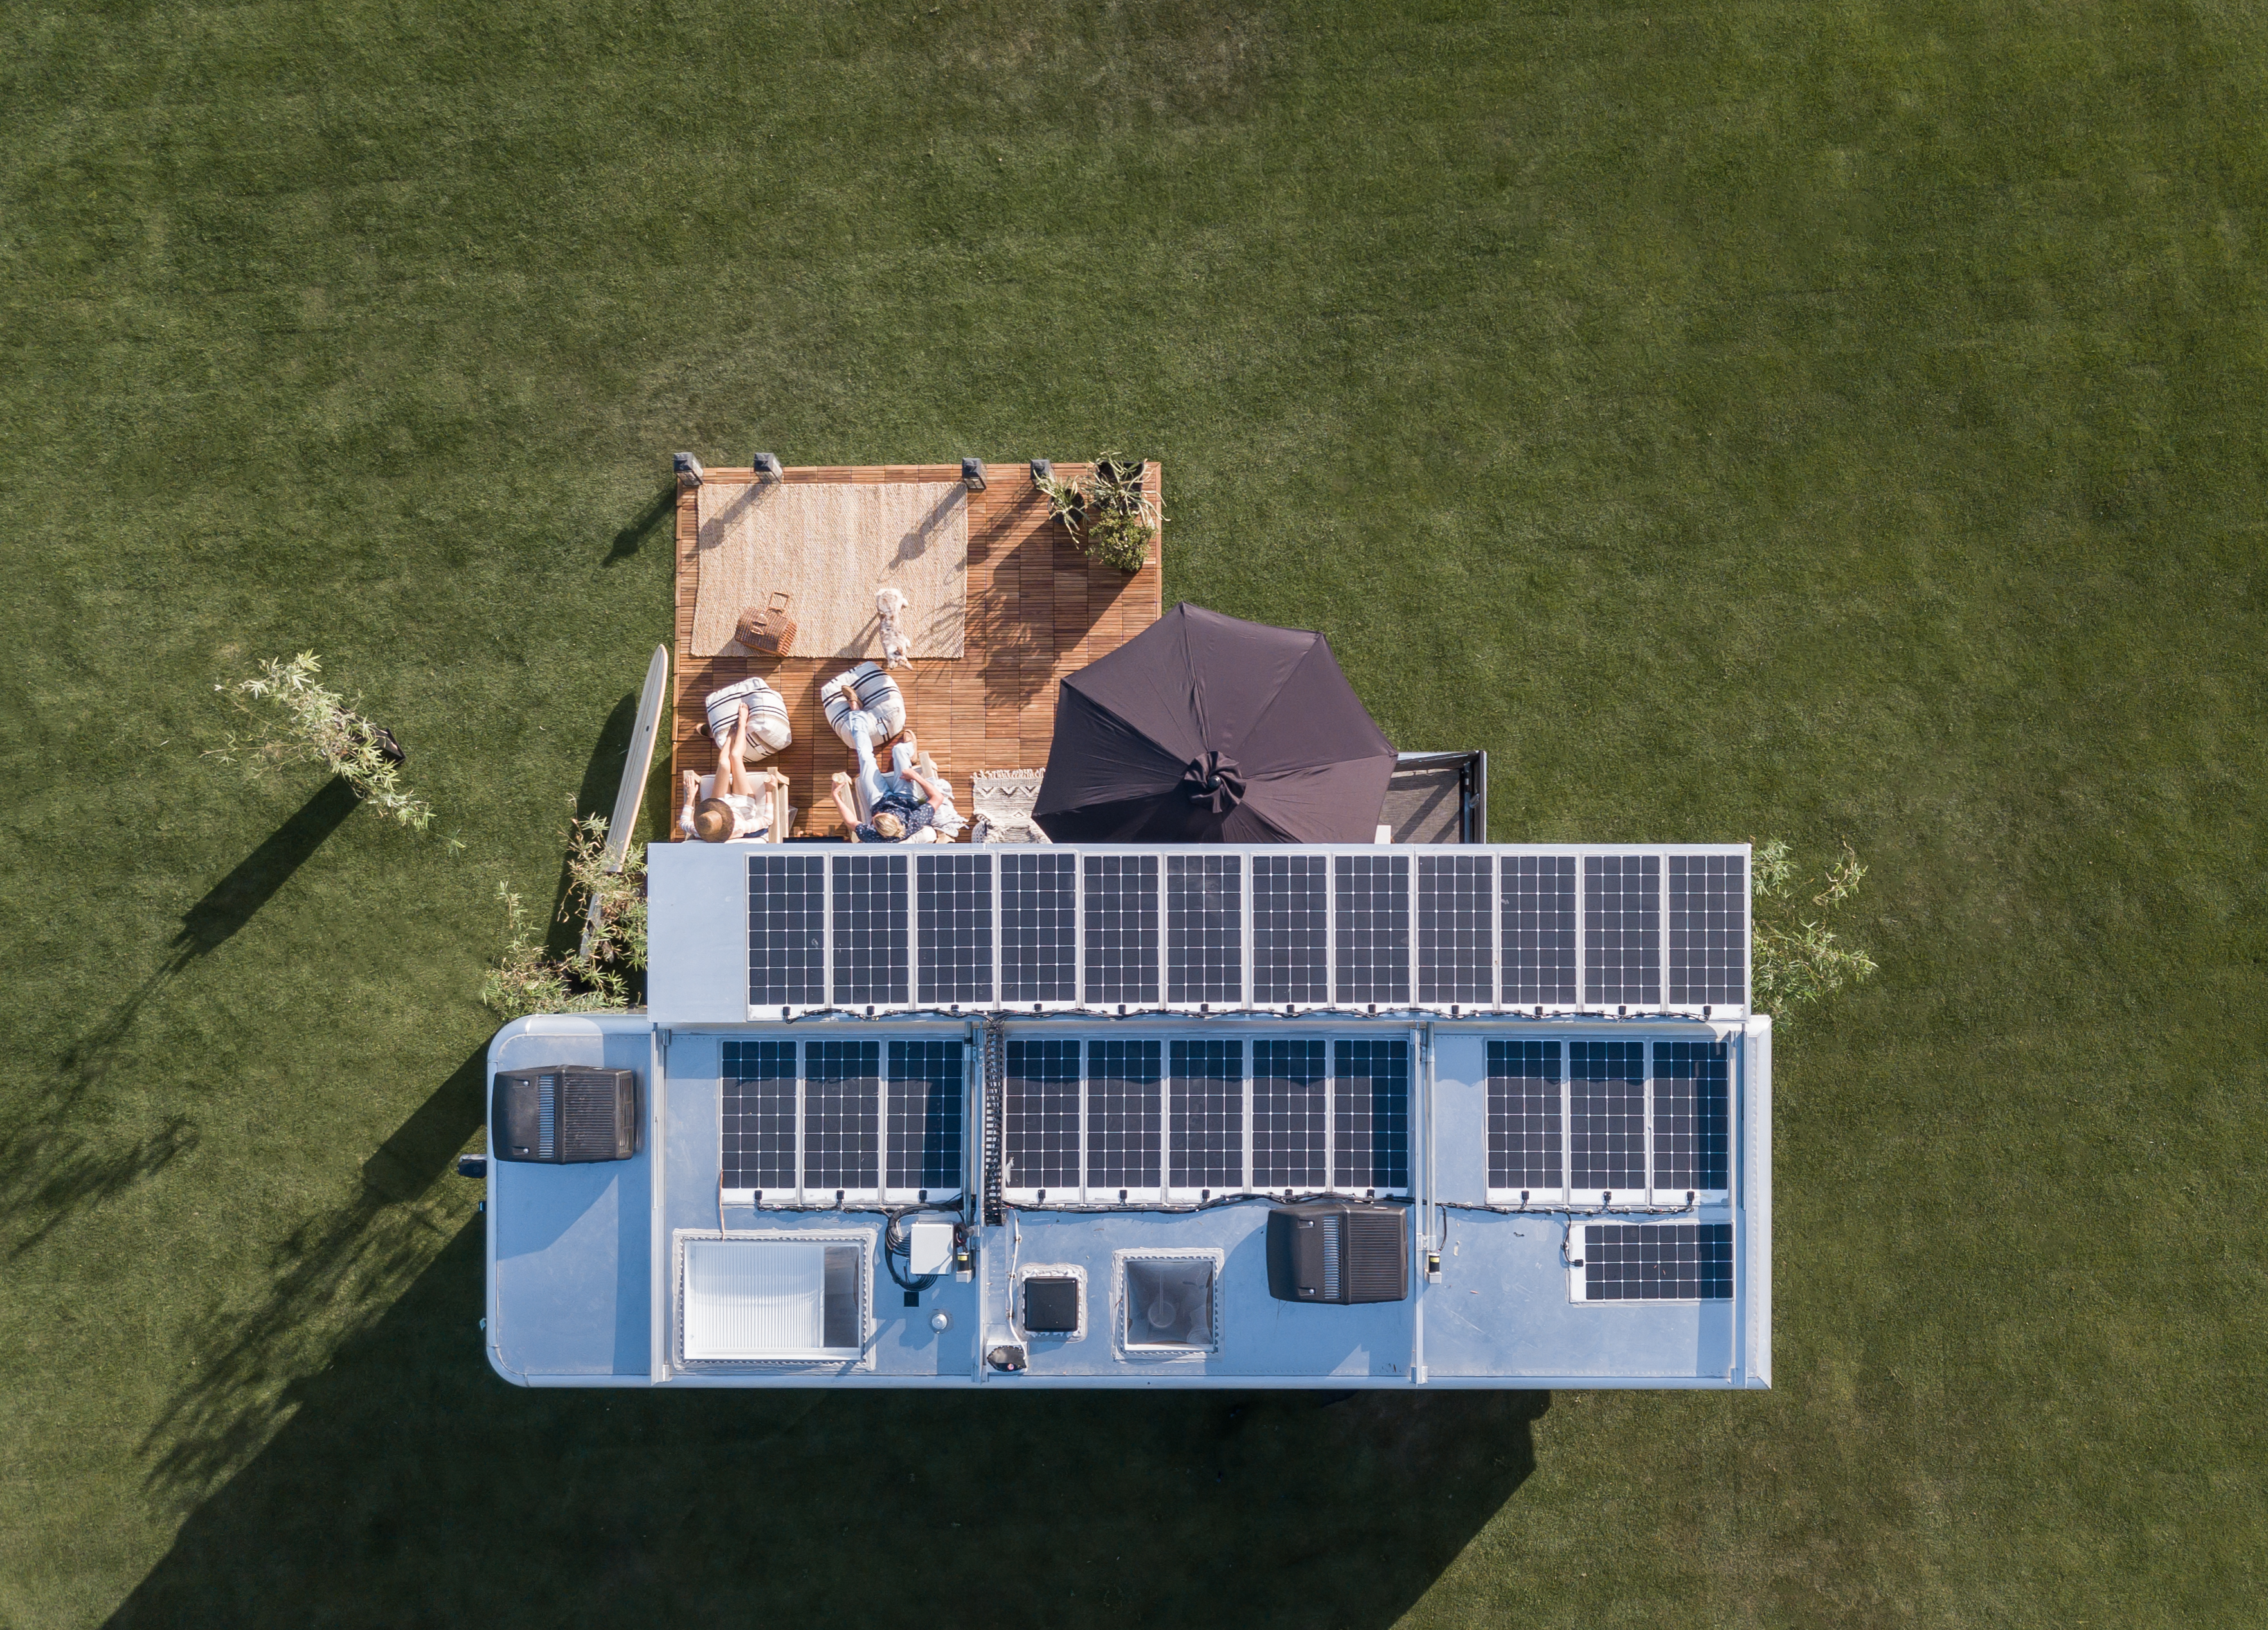 living vehicle solar panels from above